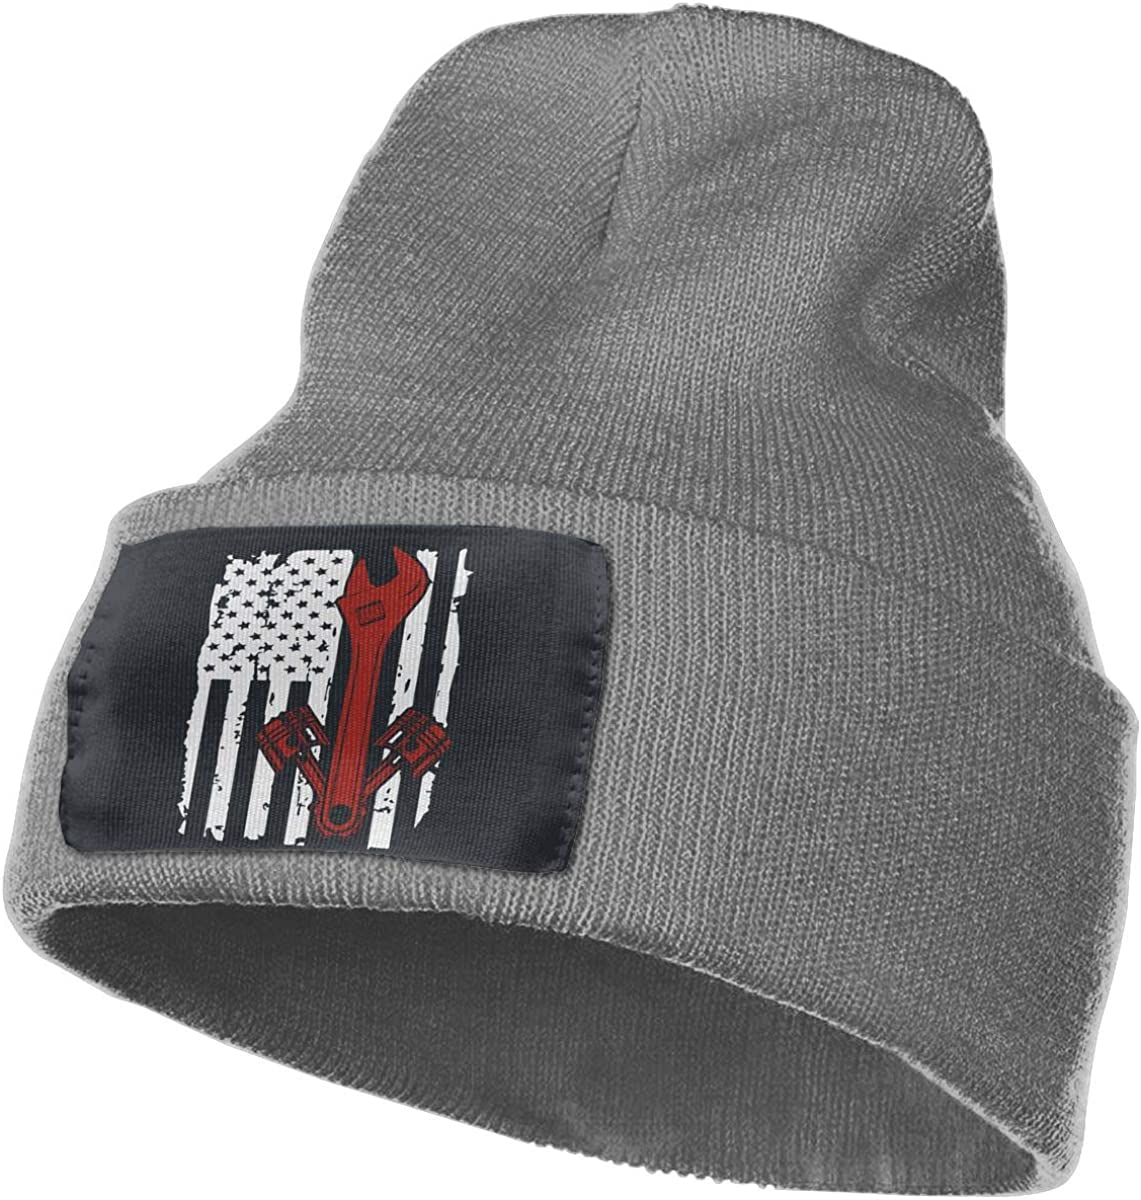 TAOMAP89 Mechanic American USA Flag Women and Men Skull Caps Winter Warm Stretchy Knitting Beanie Hats